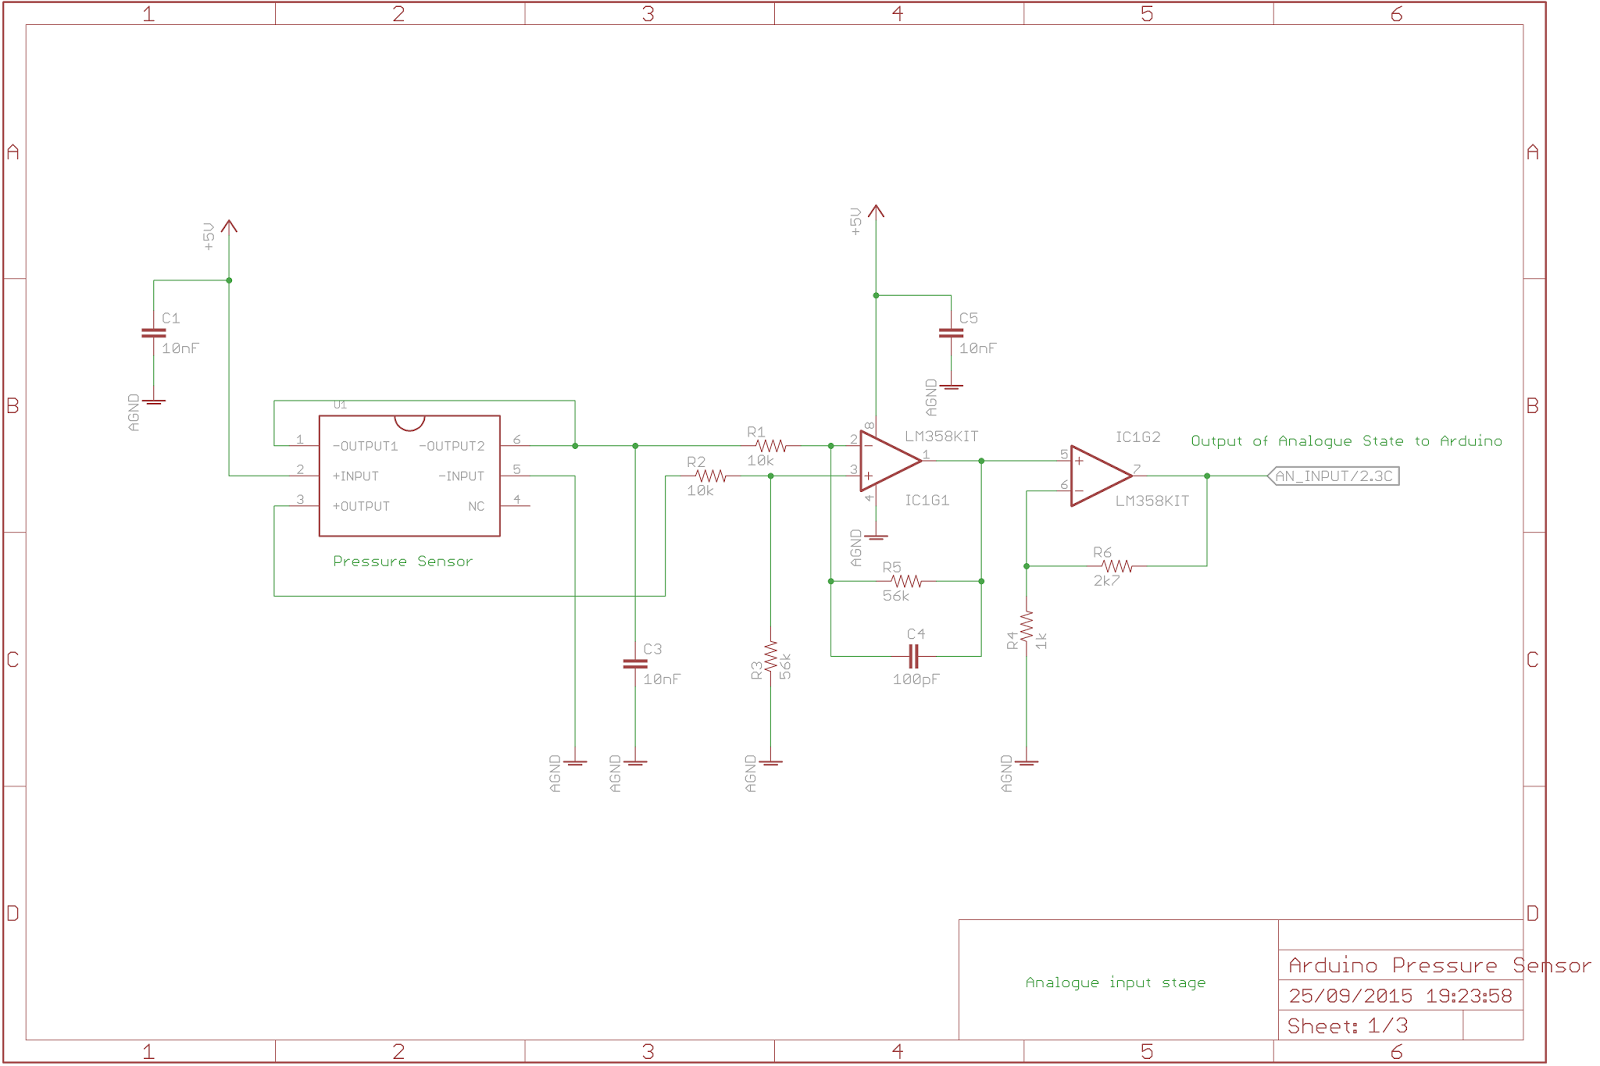 Pressure Sensor Shield Schematic analogue stage.png